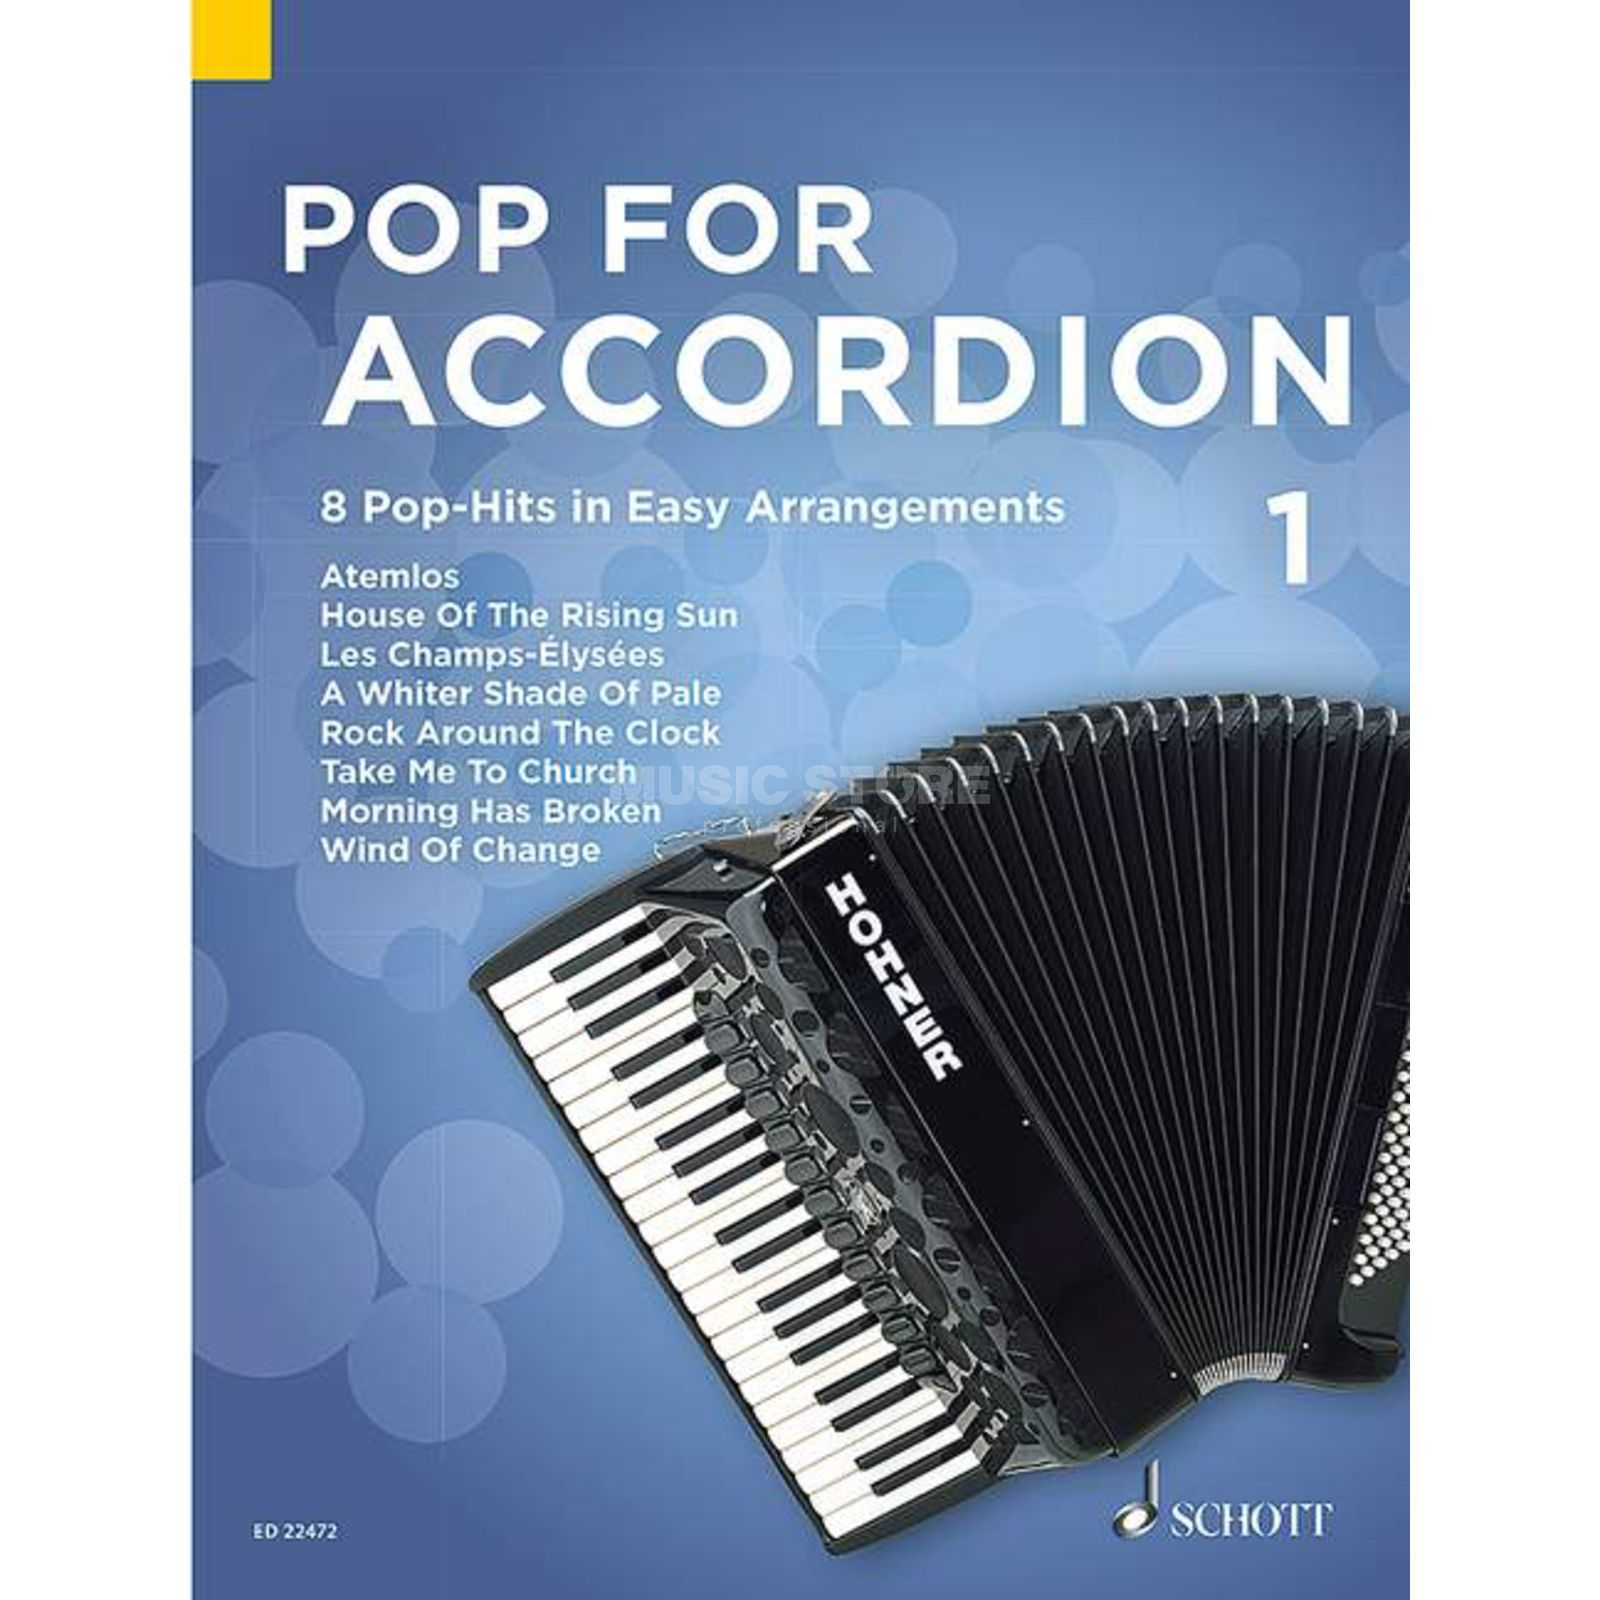 Schott-Verlag Pop For Accordion 1 Produktbild